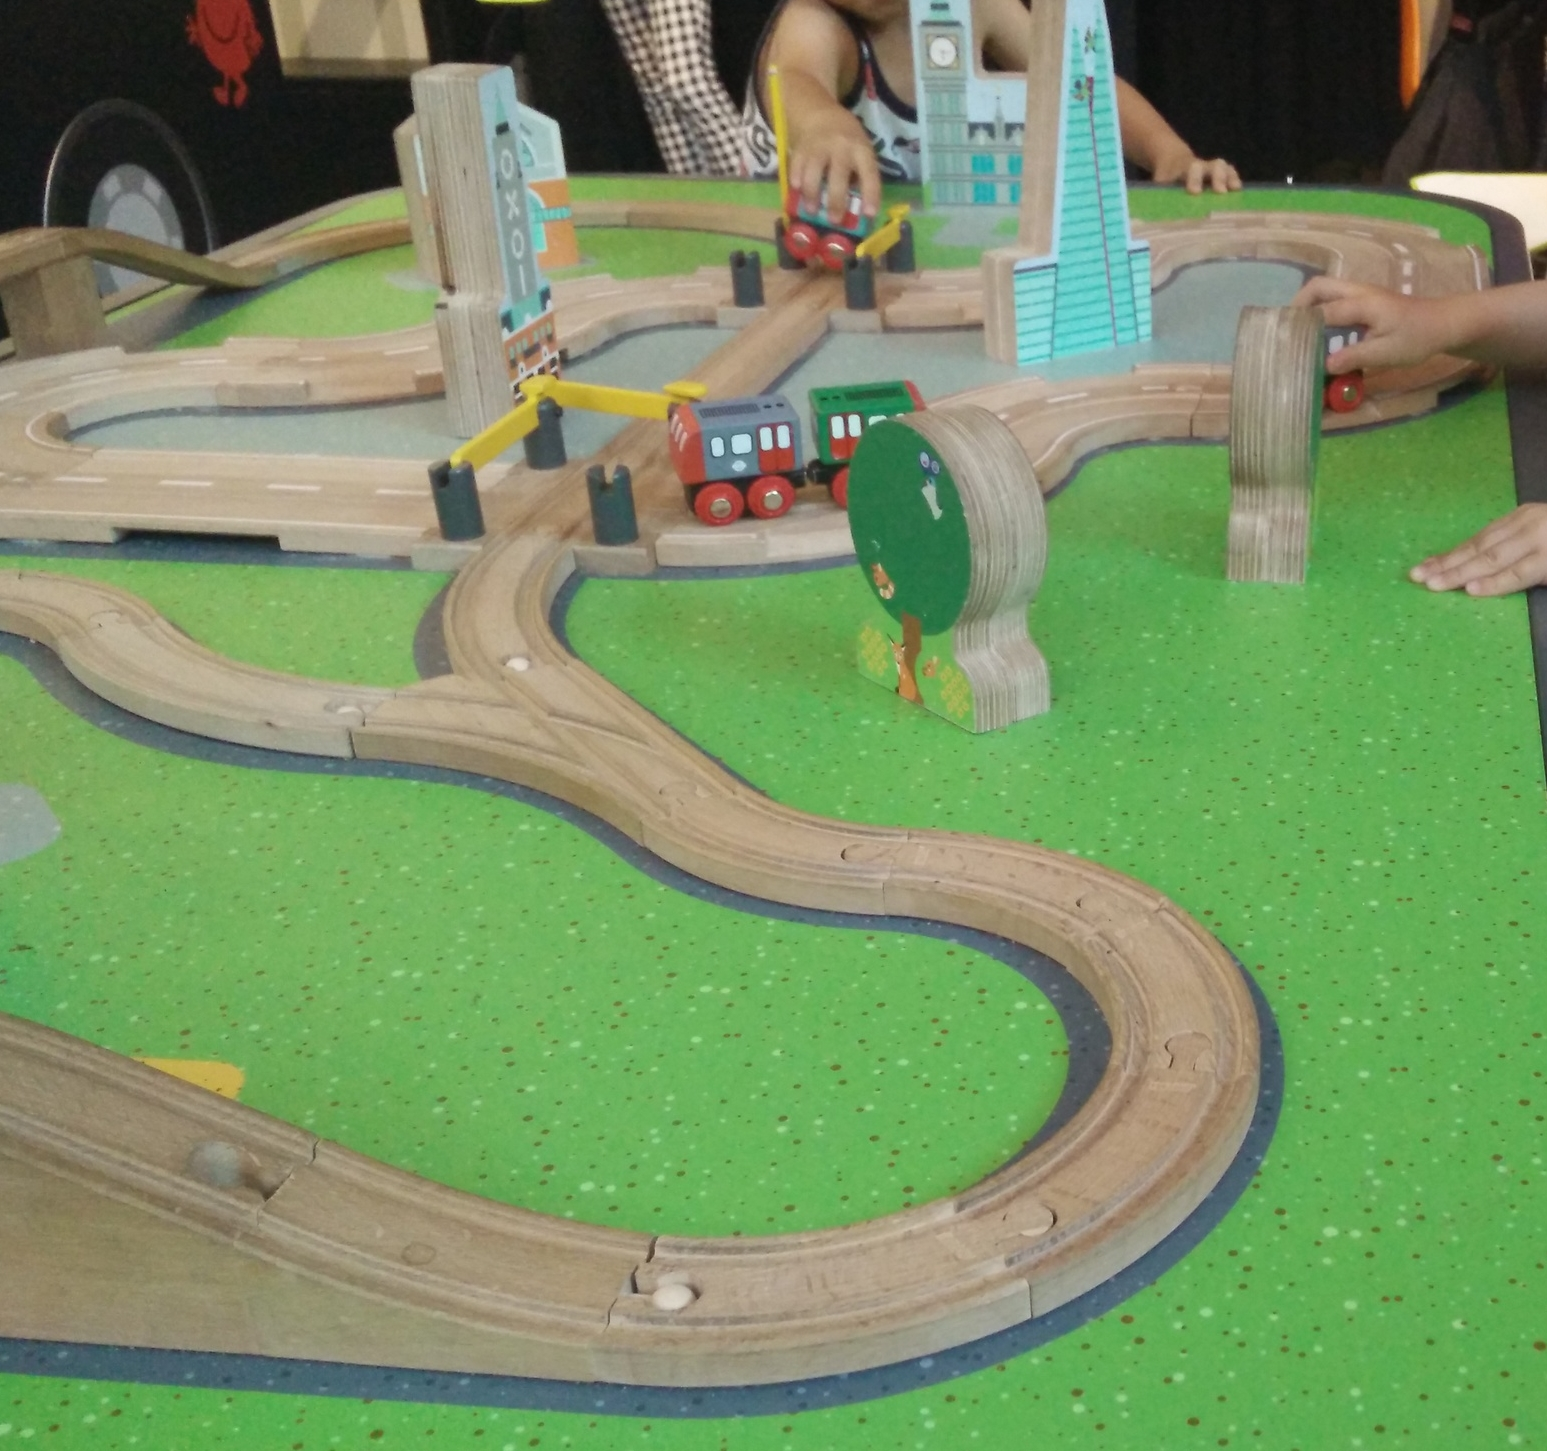 Bring your own trains here. Or maybe make your kids share the communal trains (don't need 2 per kid).